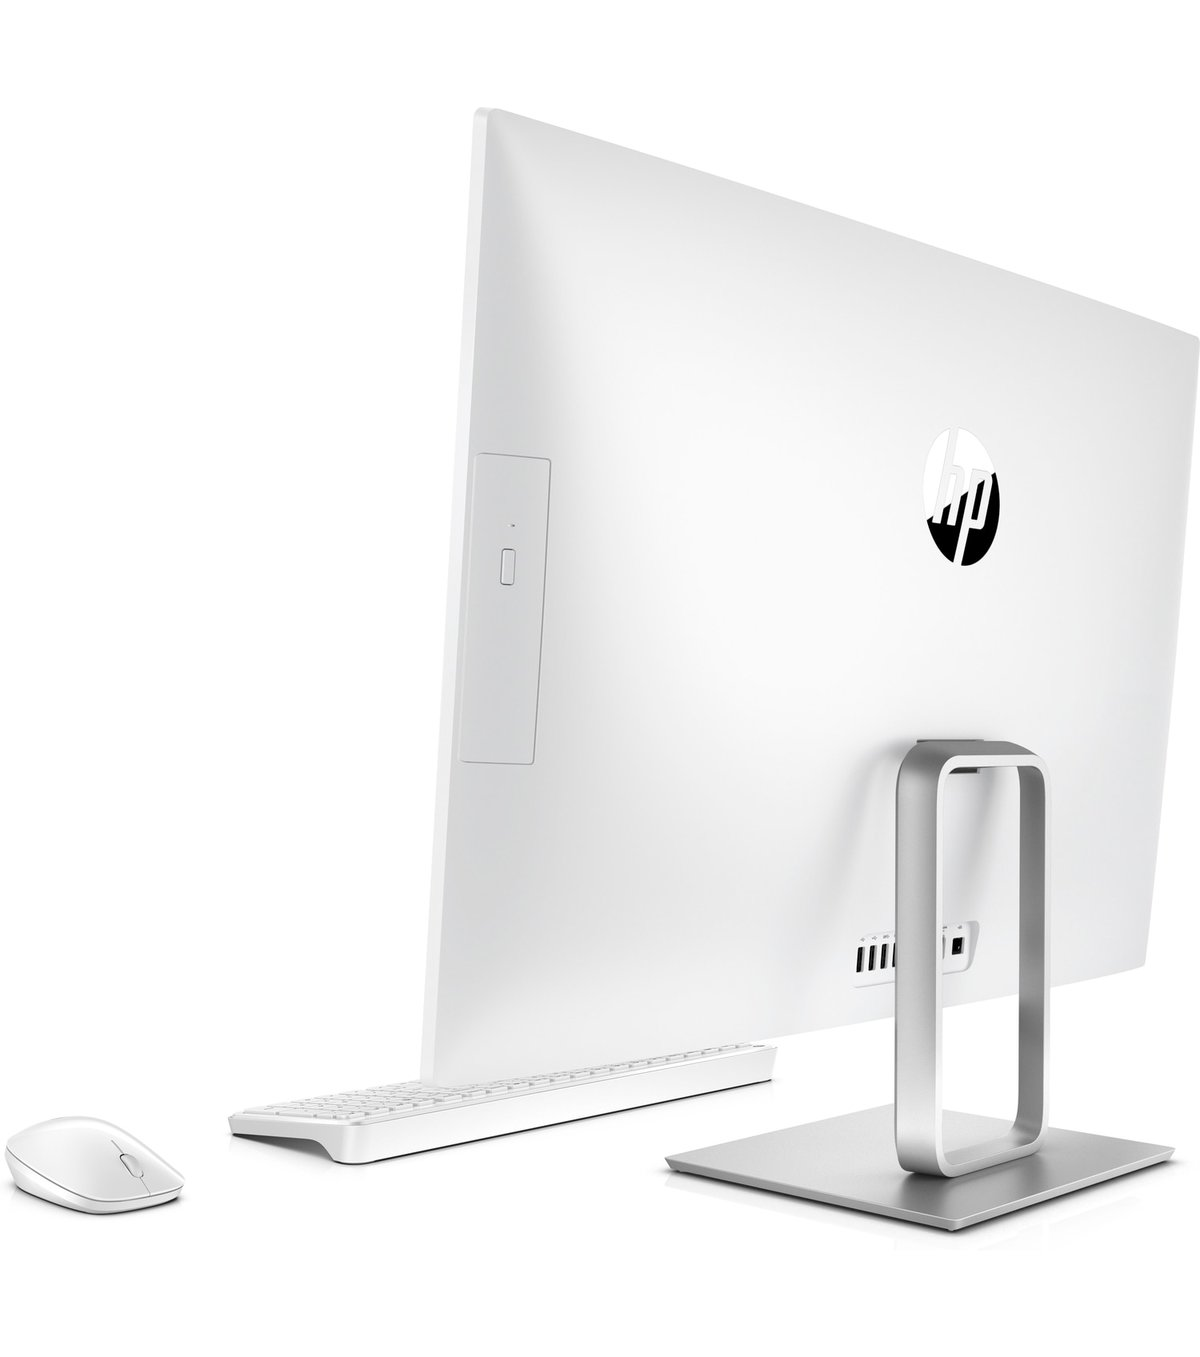 251c5b059f588 Cheap HP Pavilion 27-R079A 27-inch All-in-One Desktop